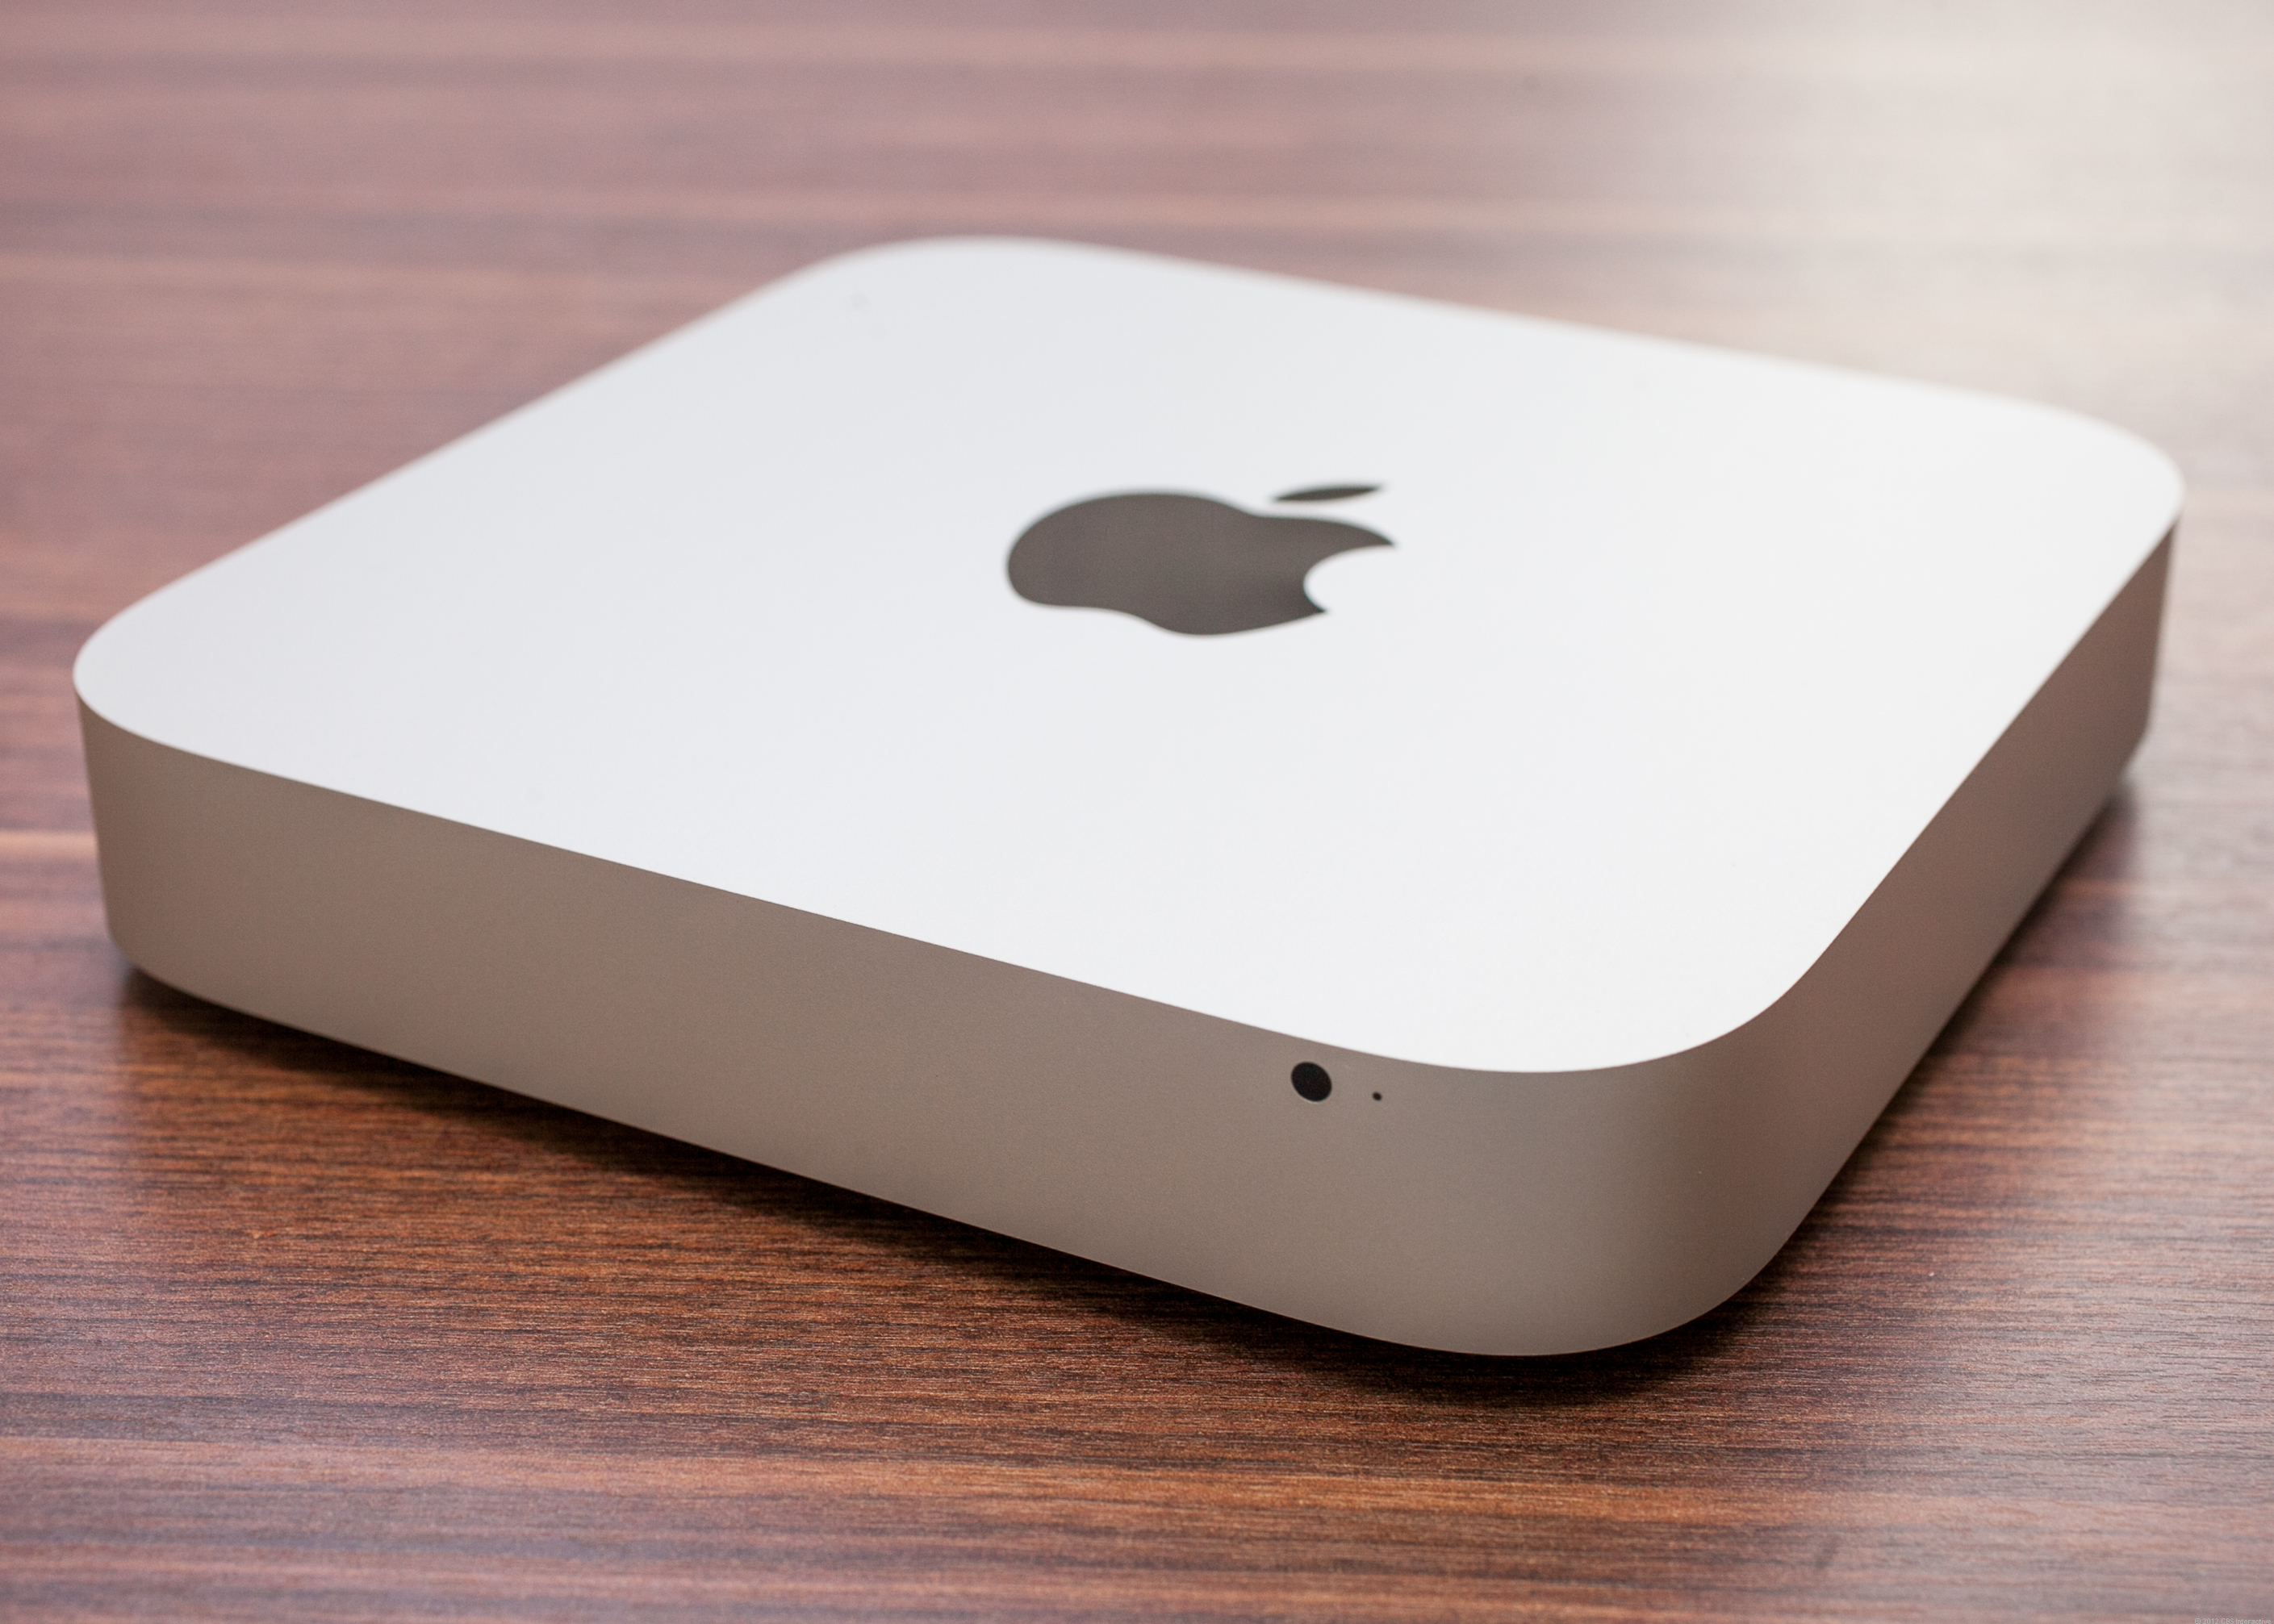 Apple Mac Mini (Core i7 2.3 GHz, fall 2012)